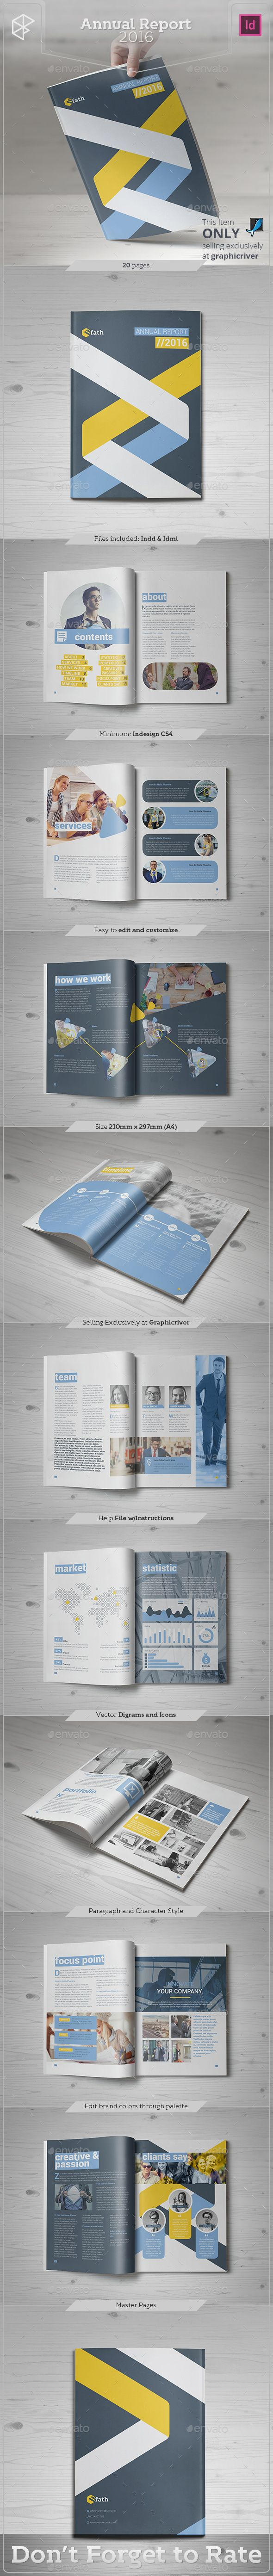 Annual Report 2016 Template InDesign INDD #design Download: http://graphicriver.net/item/annual-report-2016/14054037?ref=ksioks